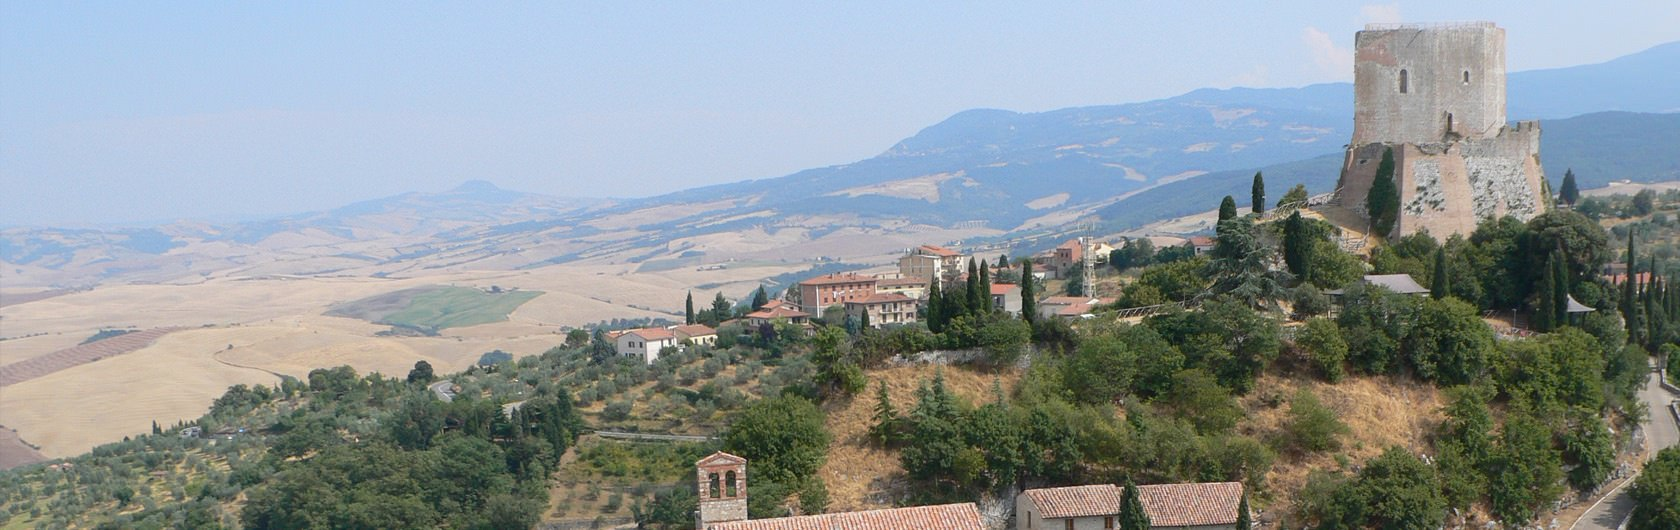 2. Central Italy: Tuscany 2, Mount Amiata in southern Tuscany